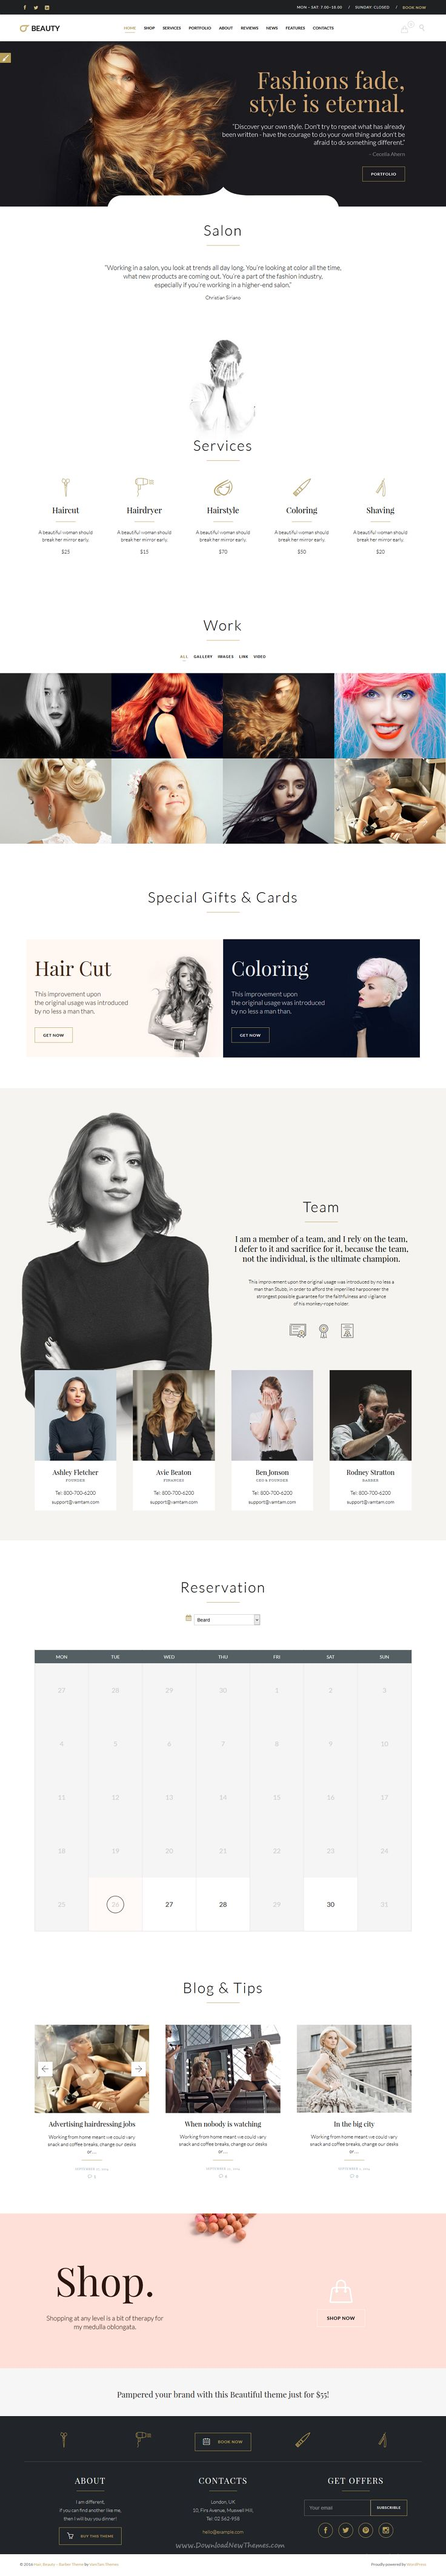 Beautiful 010 Editor Templates Big 1300 Resume Government Samples Selection Criteria Flat 18th Birthday Invitation Templates 1st Job Resume Template Youthful 2014 Printable Calendar Template Bright24 Hour Timeline Template 25  Best Ideas About Salon Website On Pinterest | Website Design ..